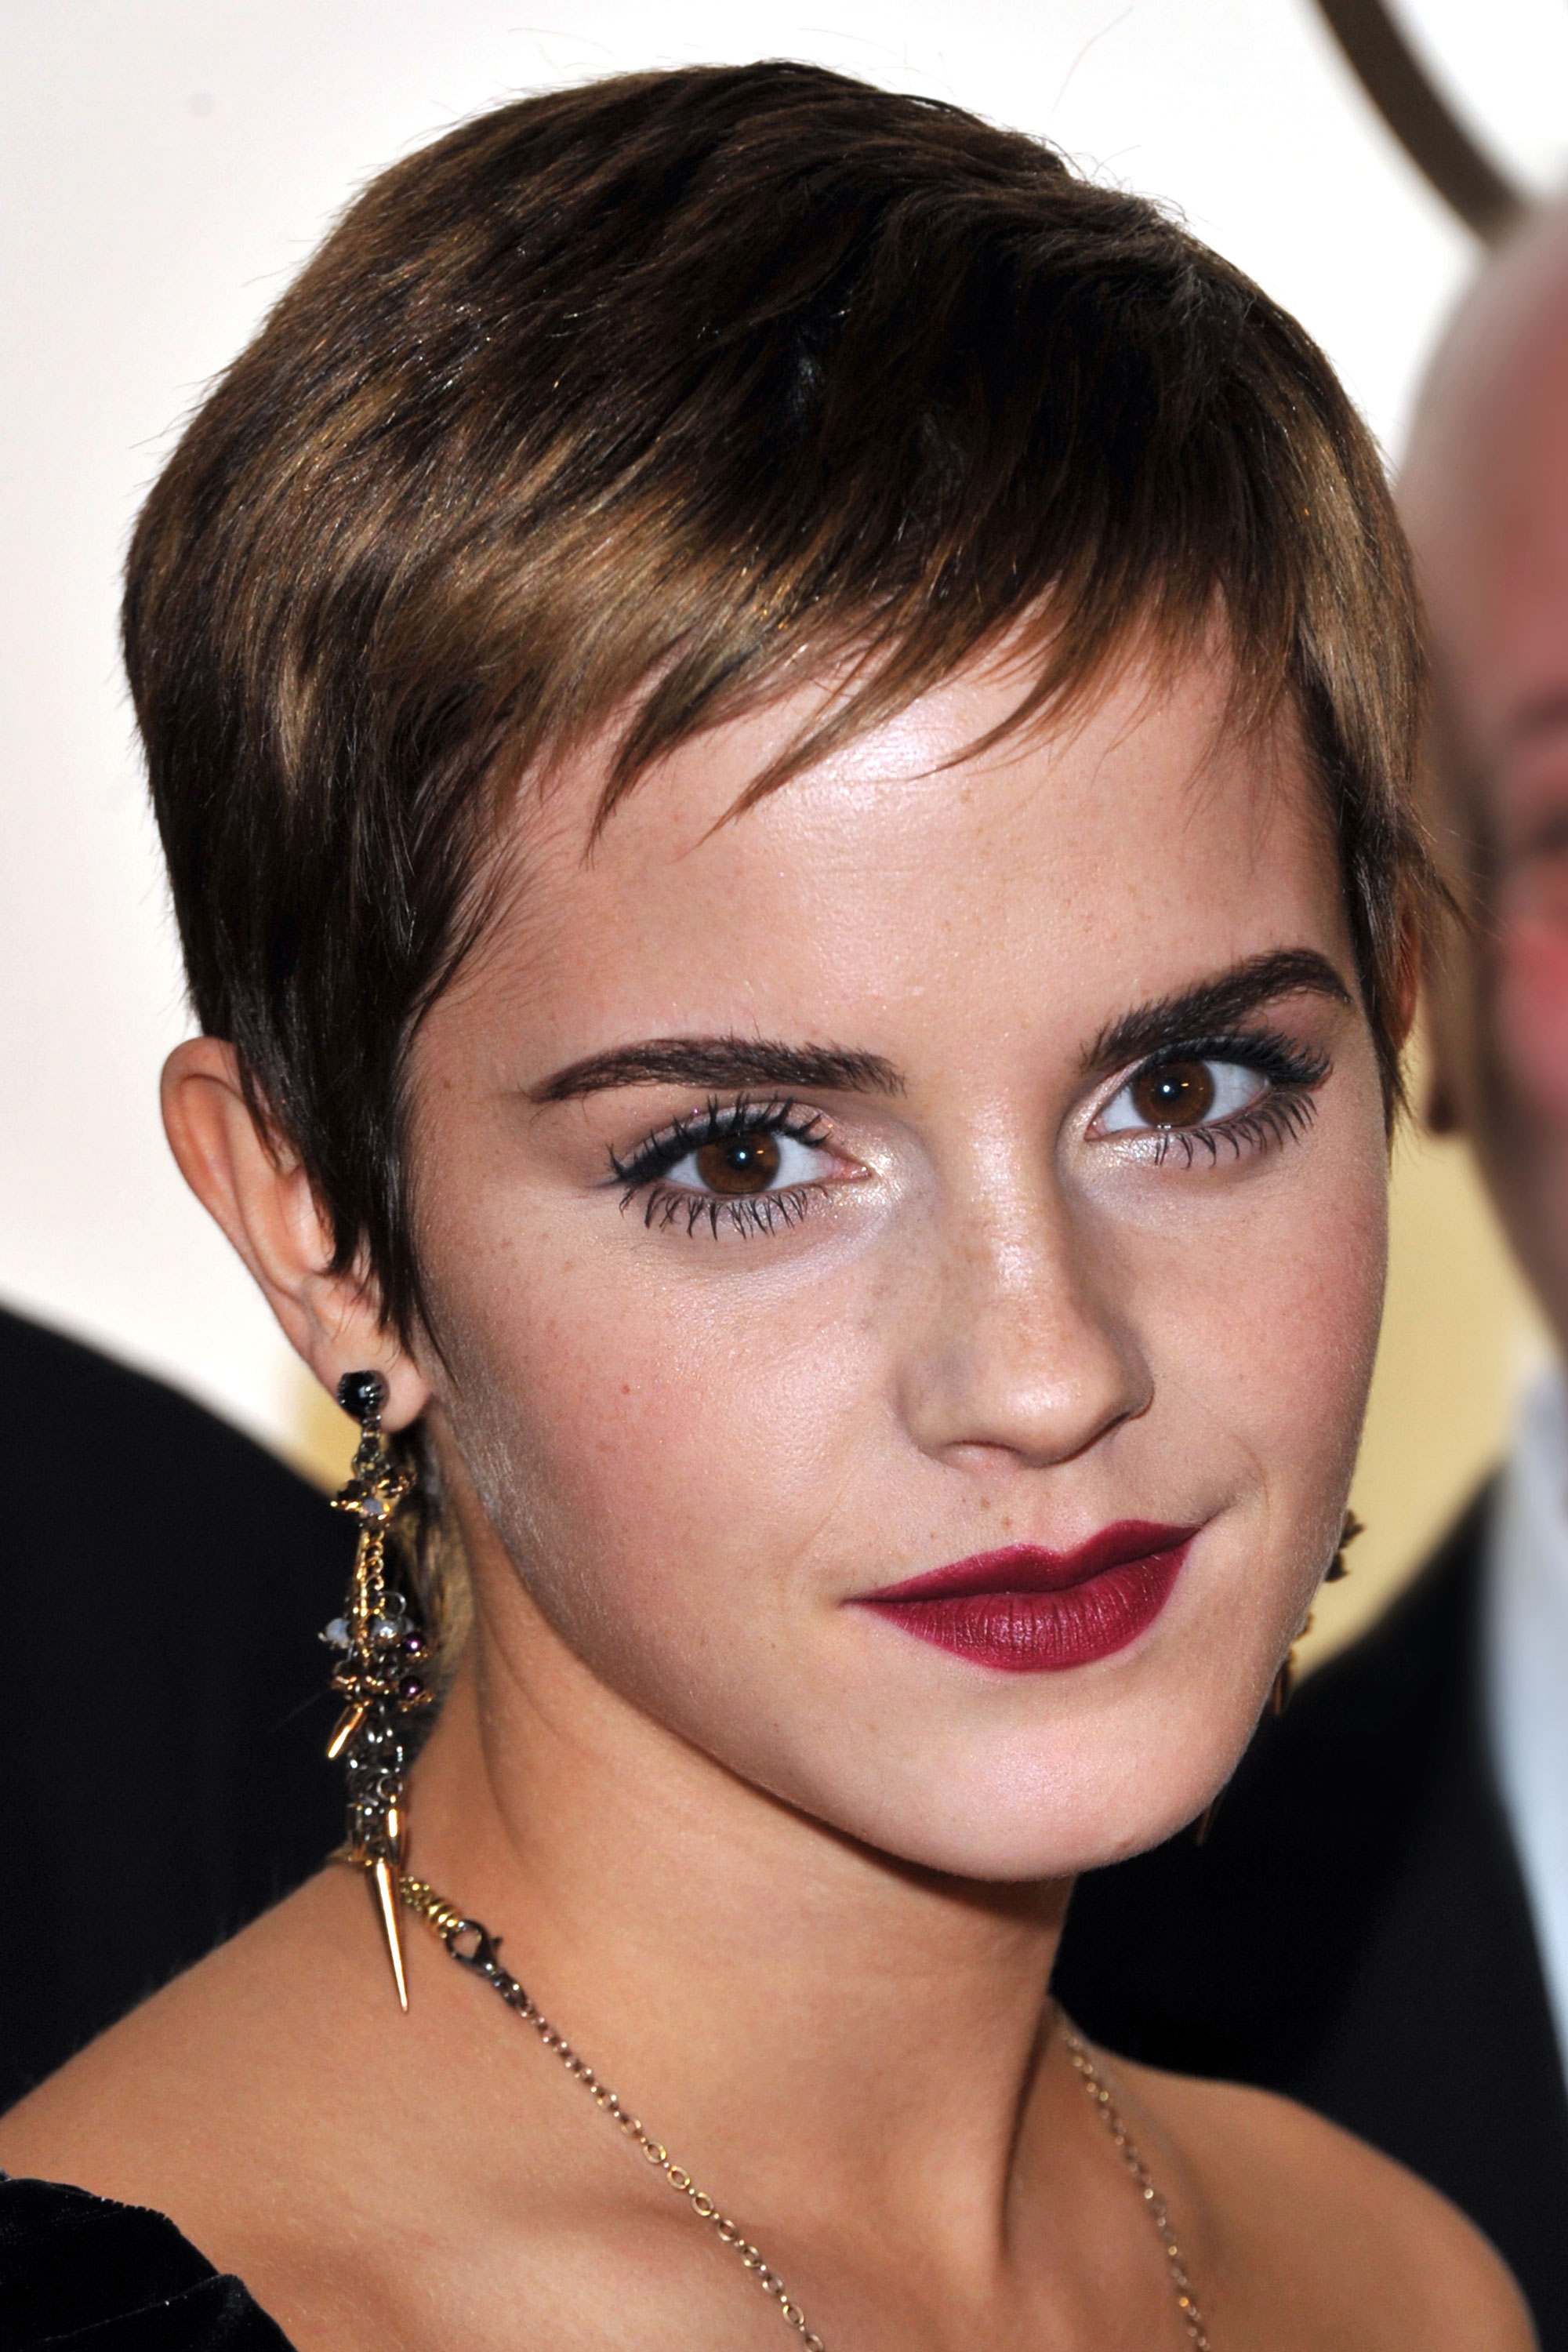 Surprising 42 Pixie Cuts We Love For 2017 Short Pixie Hairstyles From Short Hairstyles Gunalazisus